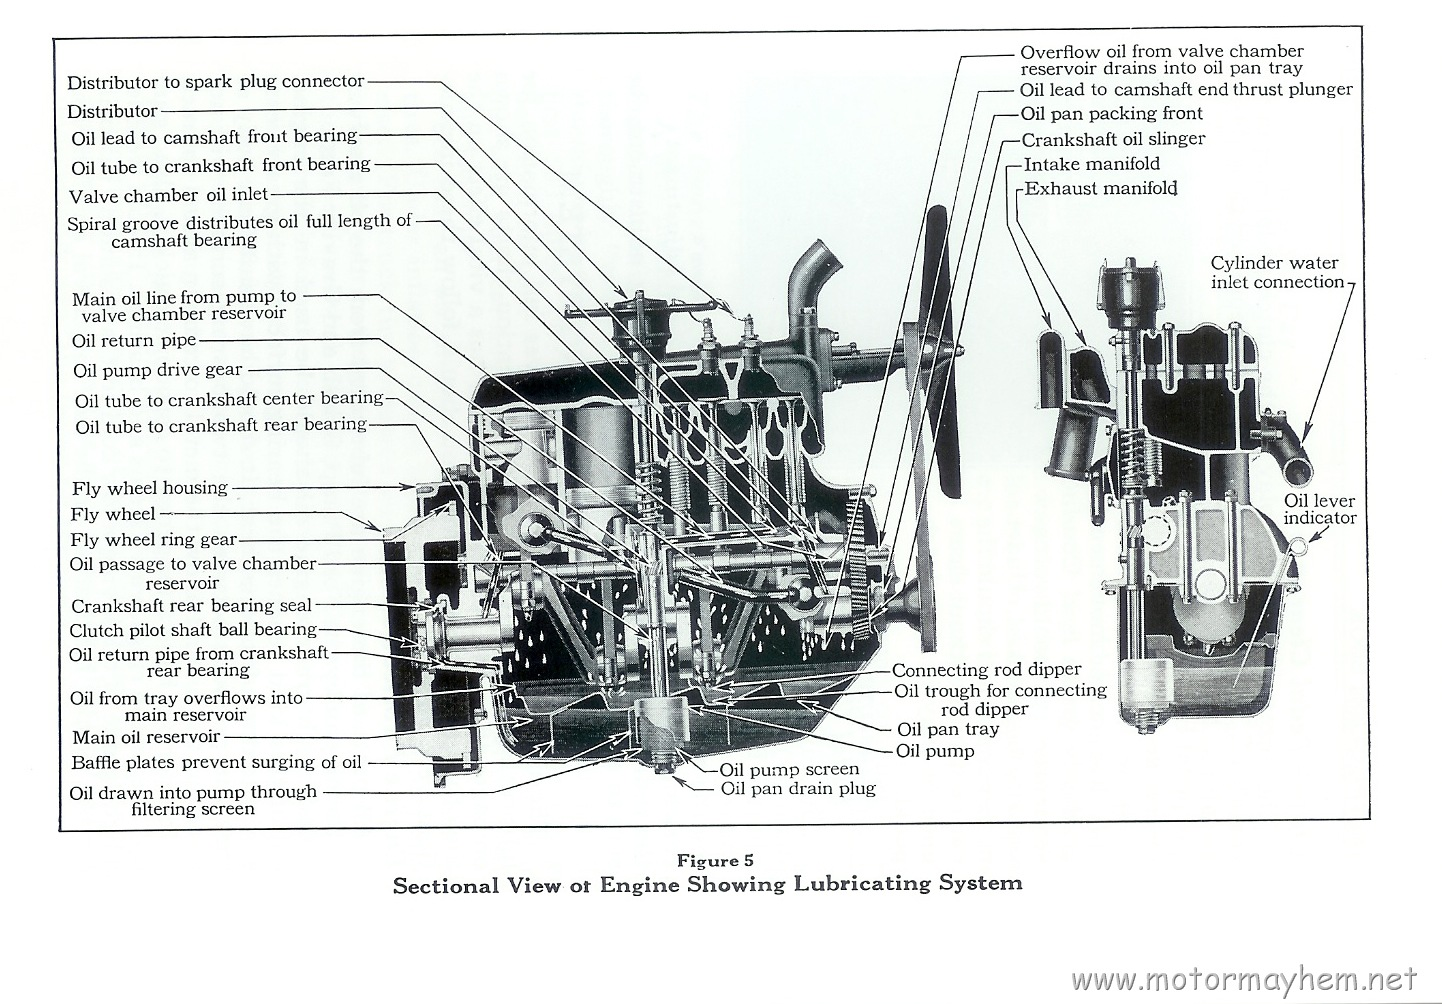 hight resolution of engine oiling system